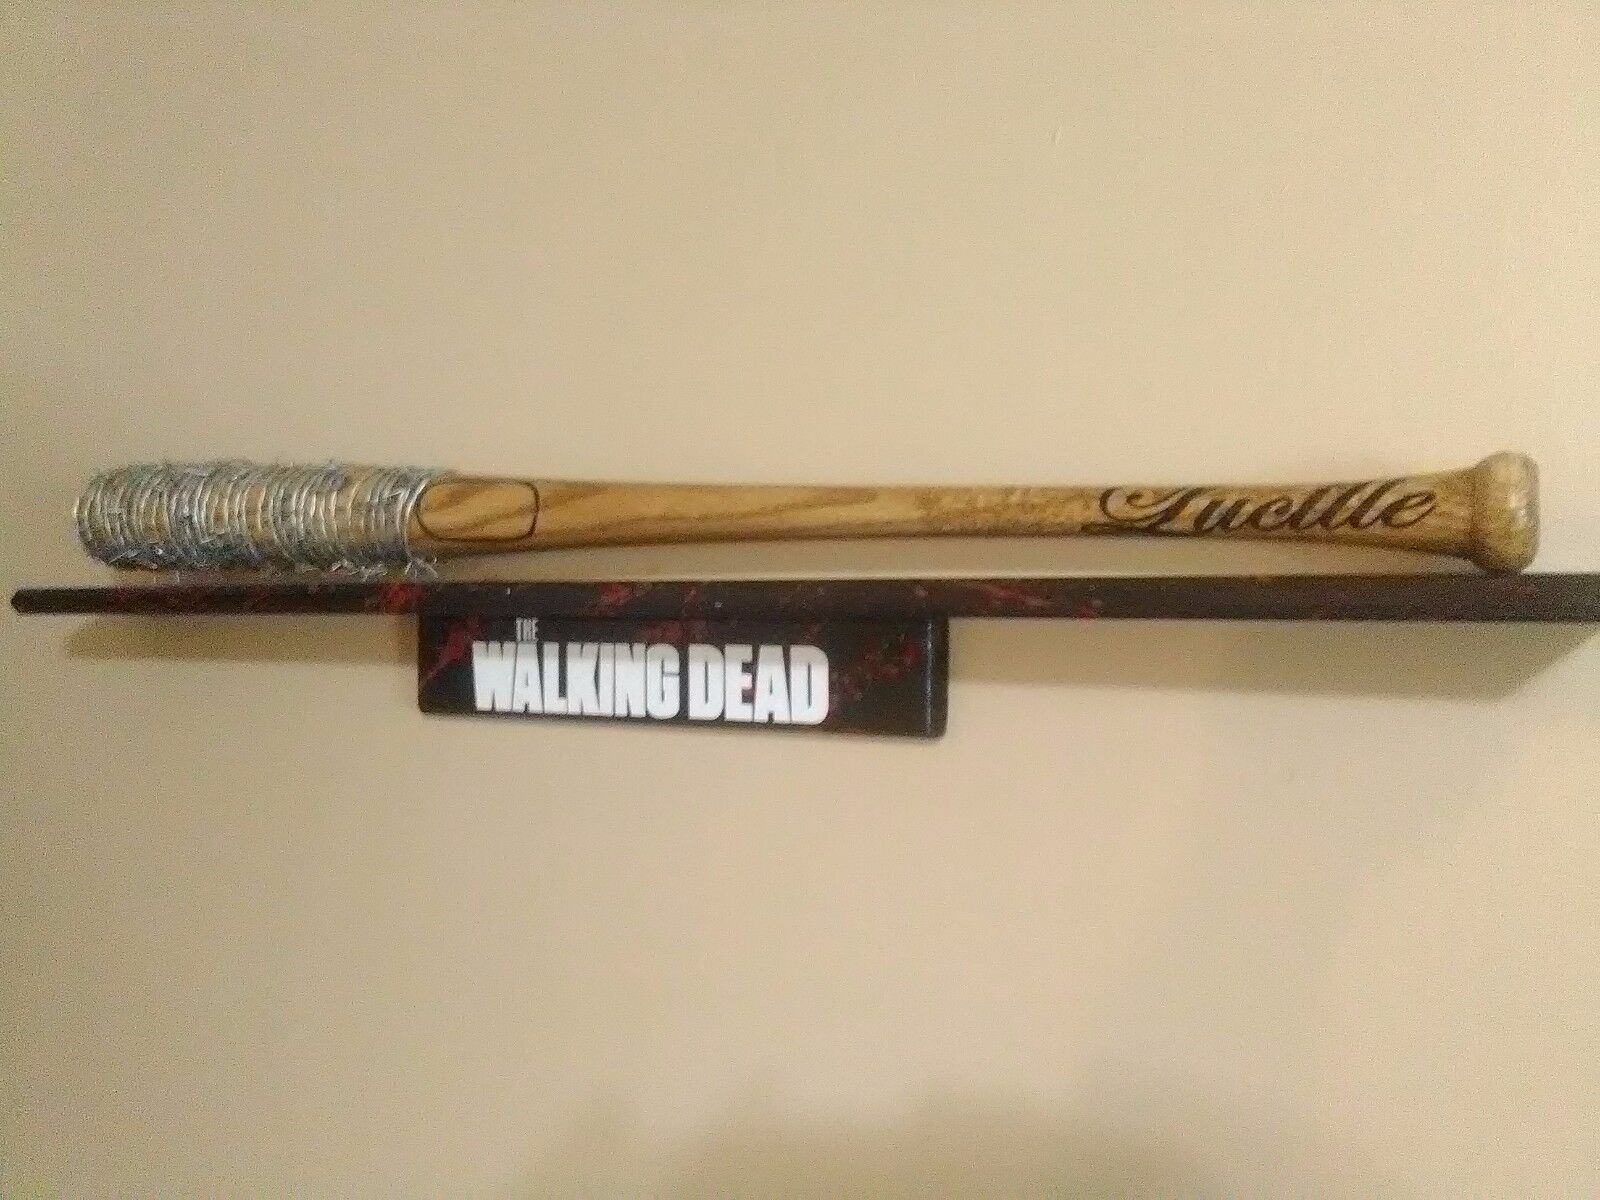 The Walking Dead negan 'Lucille Barbwire bat Prop éclaboussures de sang avec autocollants